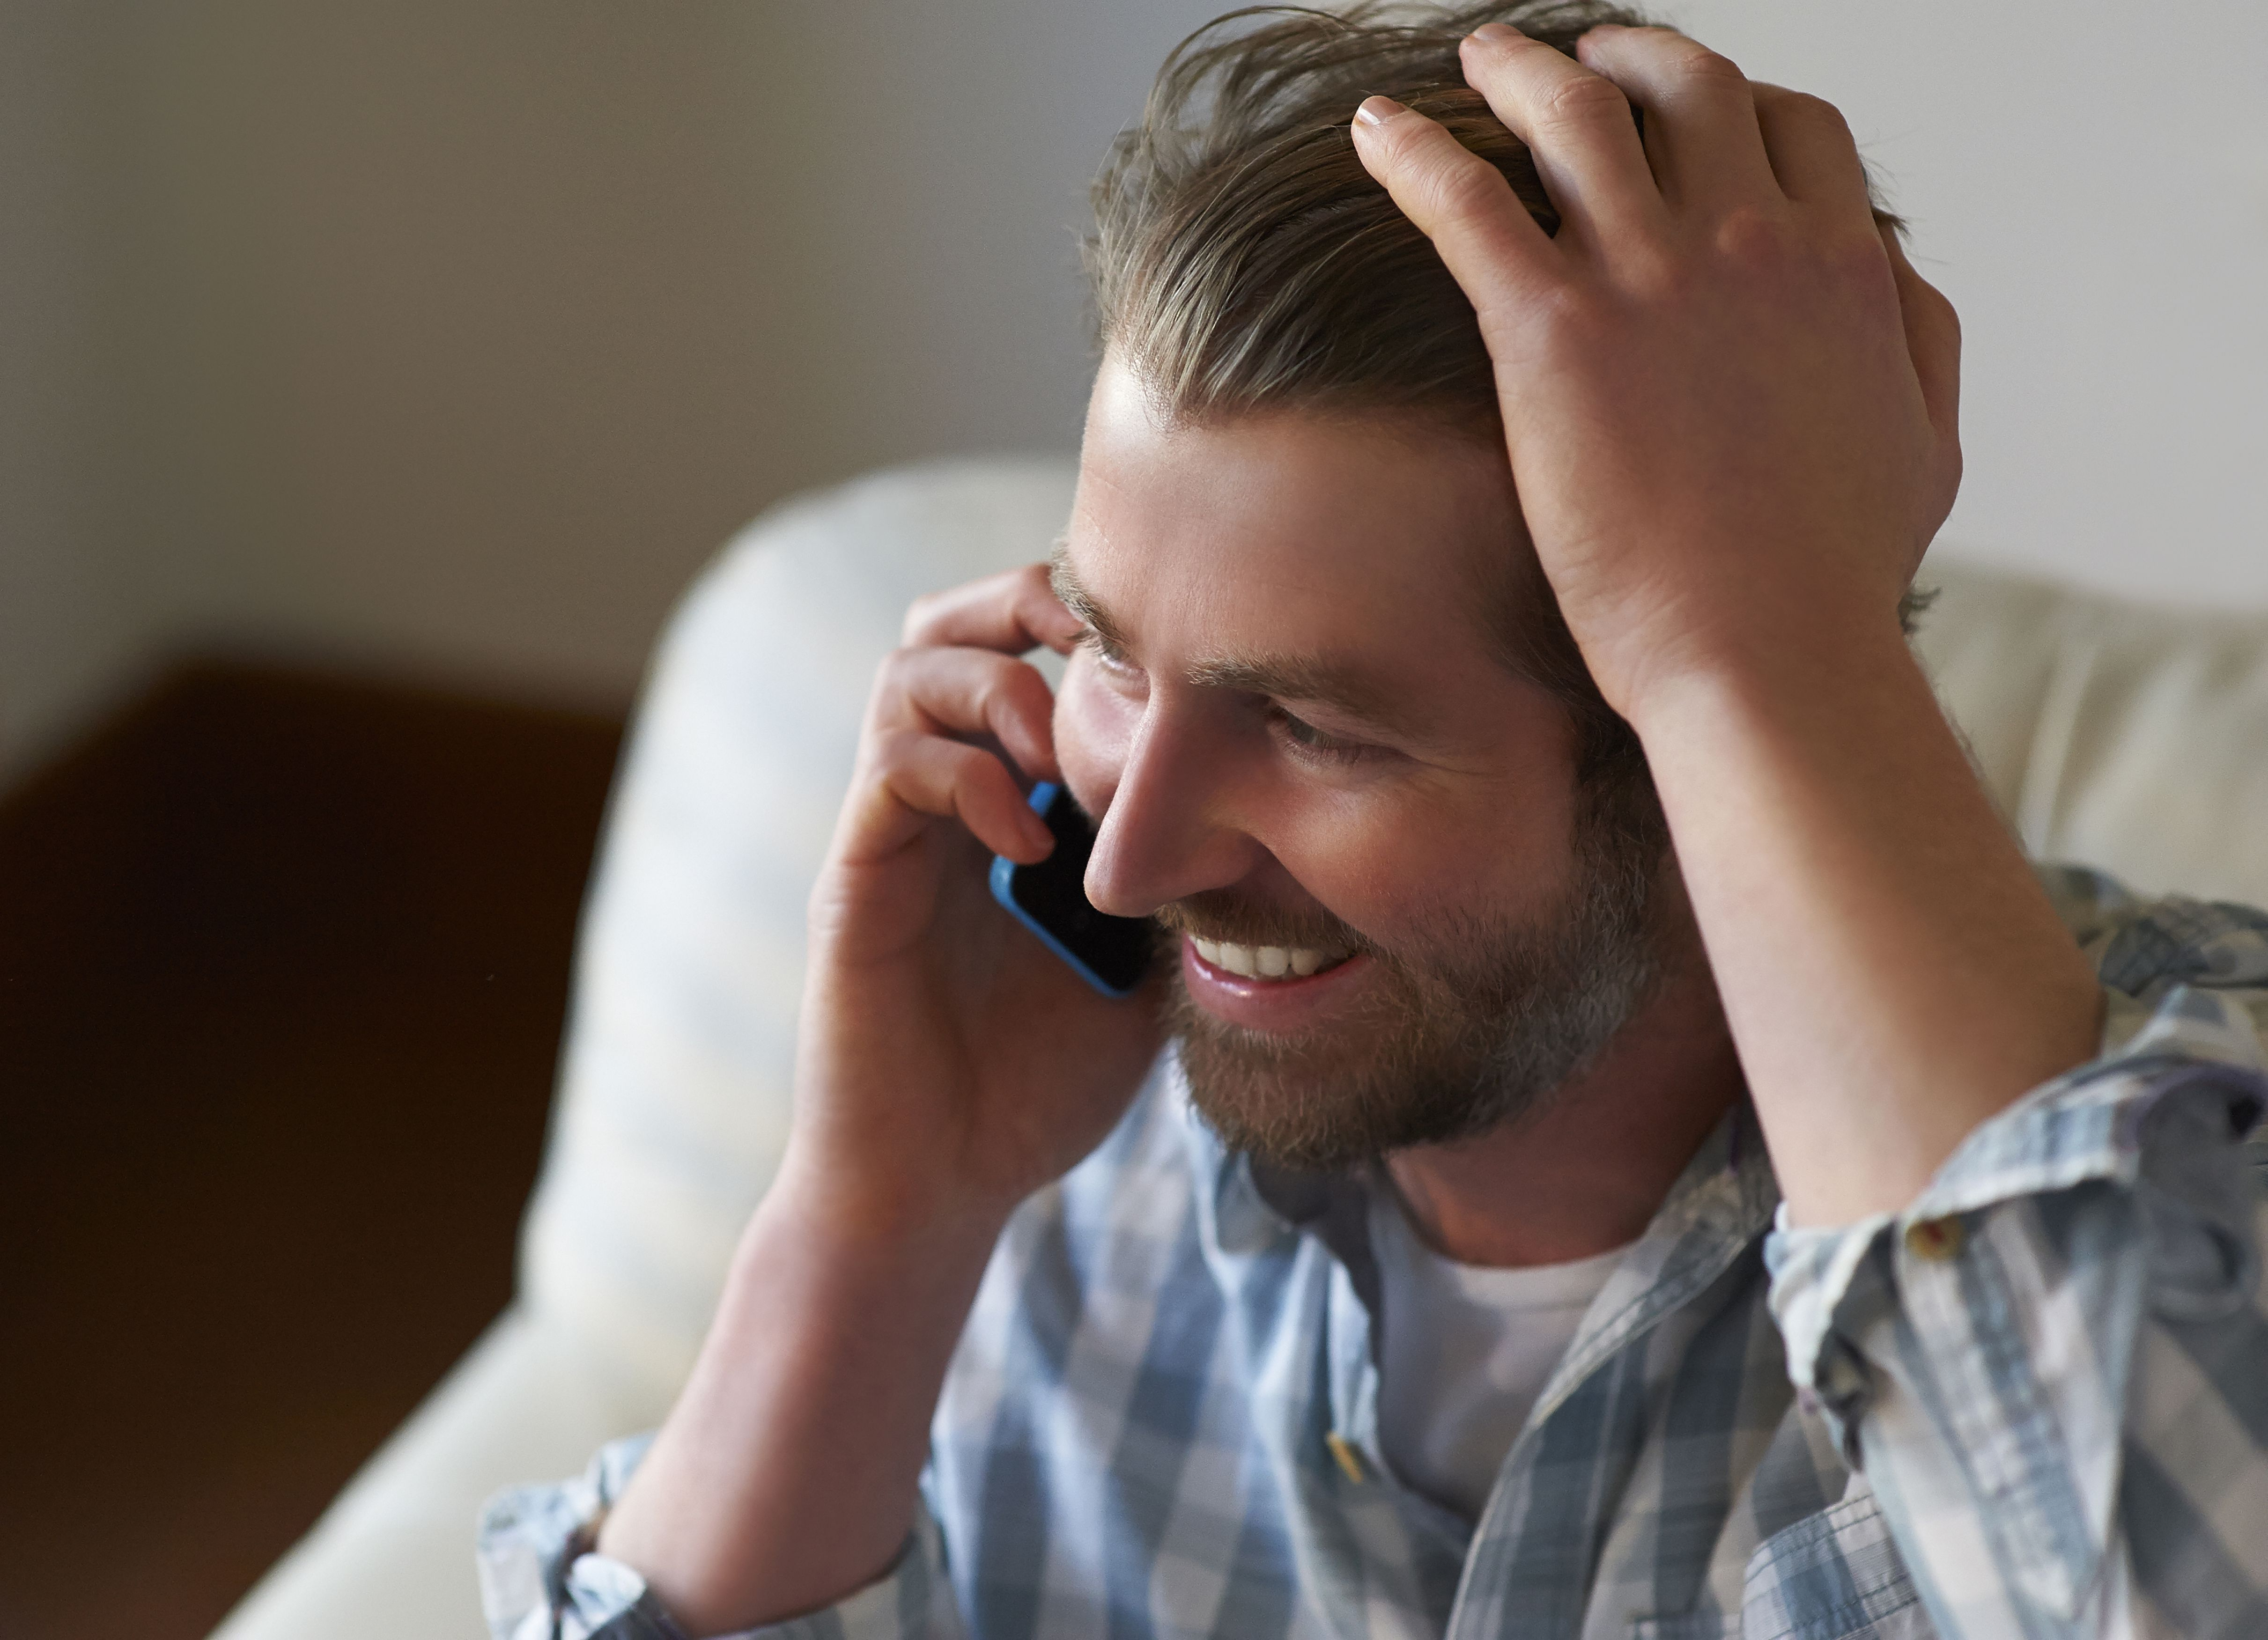 Man using mobile phone at home.